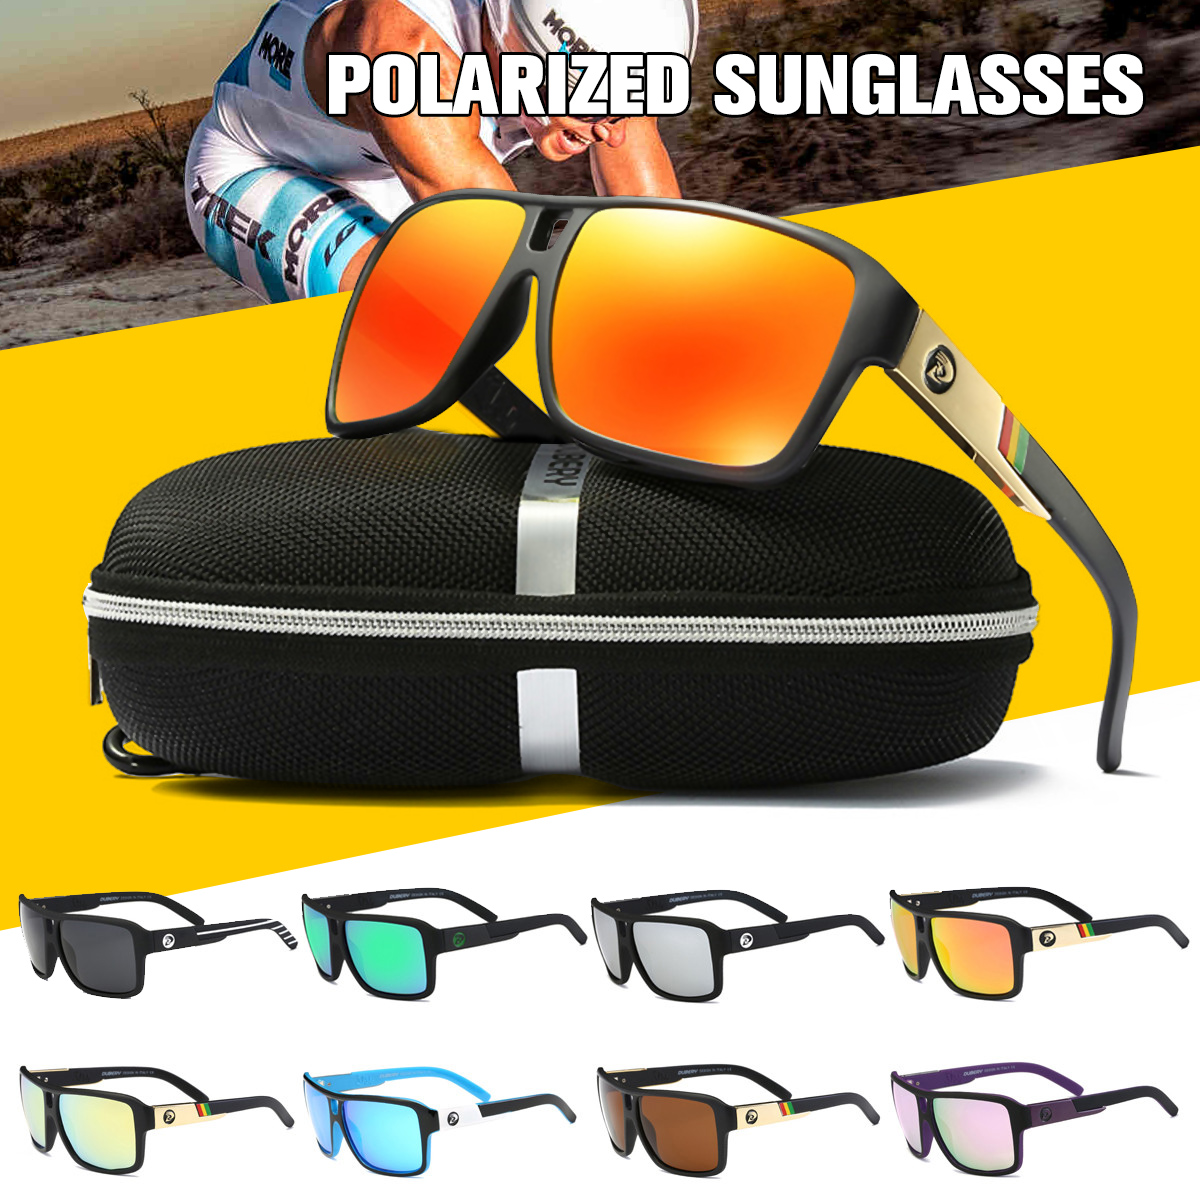 Polarized Sunglasses Square Cycling Sport Driving Men Women Fishing Sun Glasses Traveling Anti-Glare Eyewear Father Gift w/ Box лента fit 11795